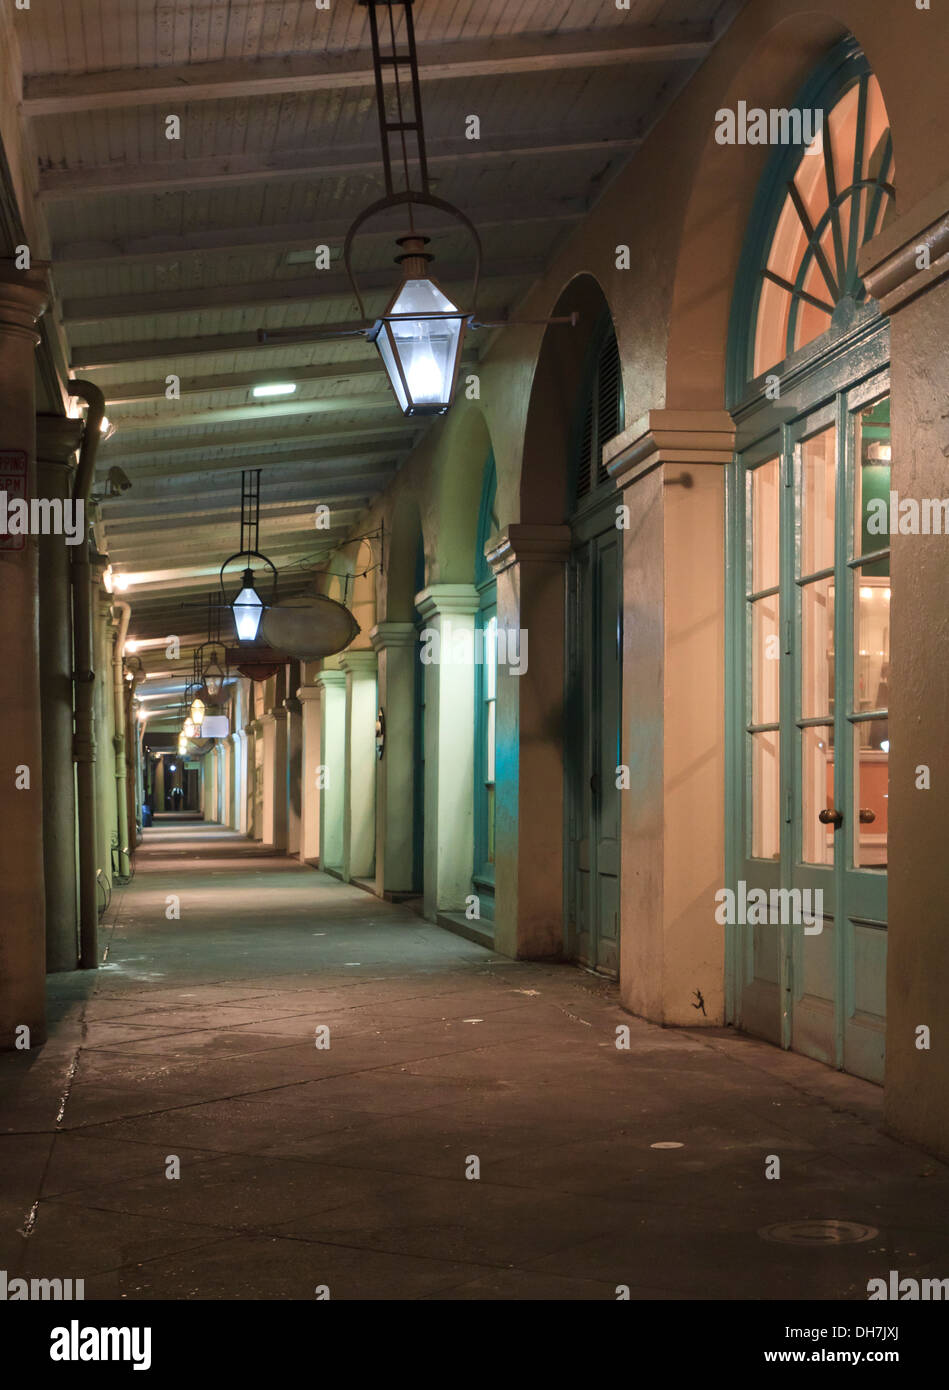 Nighttime view of the walkway in the French Market in the French Quarter of New Orleans, Louisiana - Stock Image